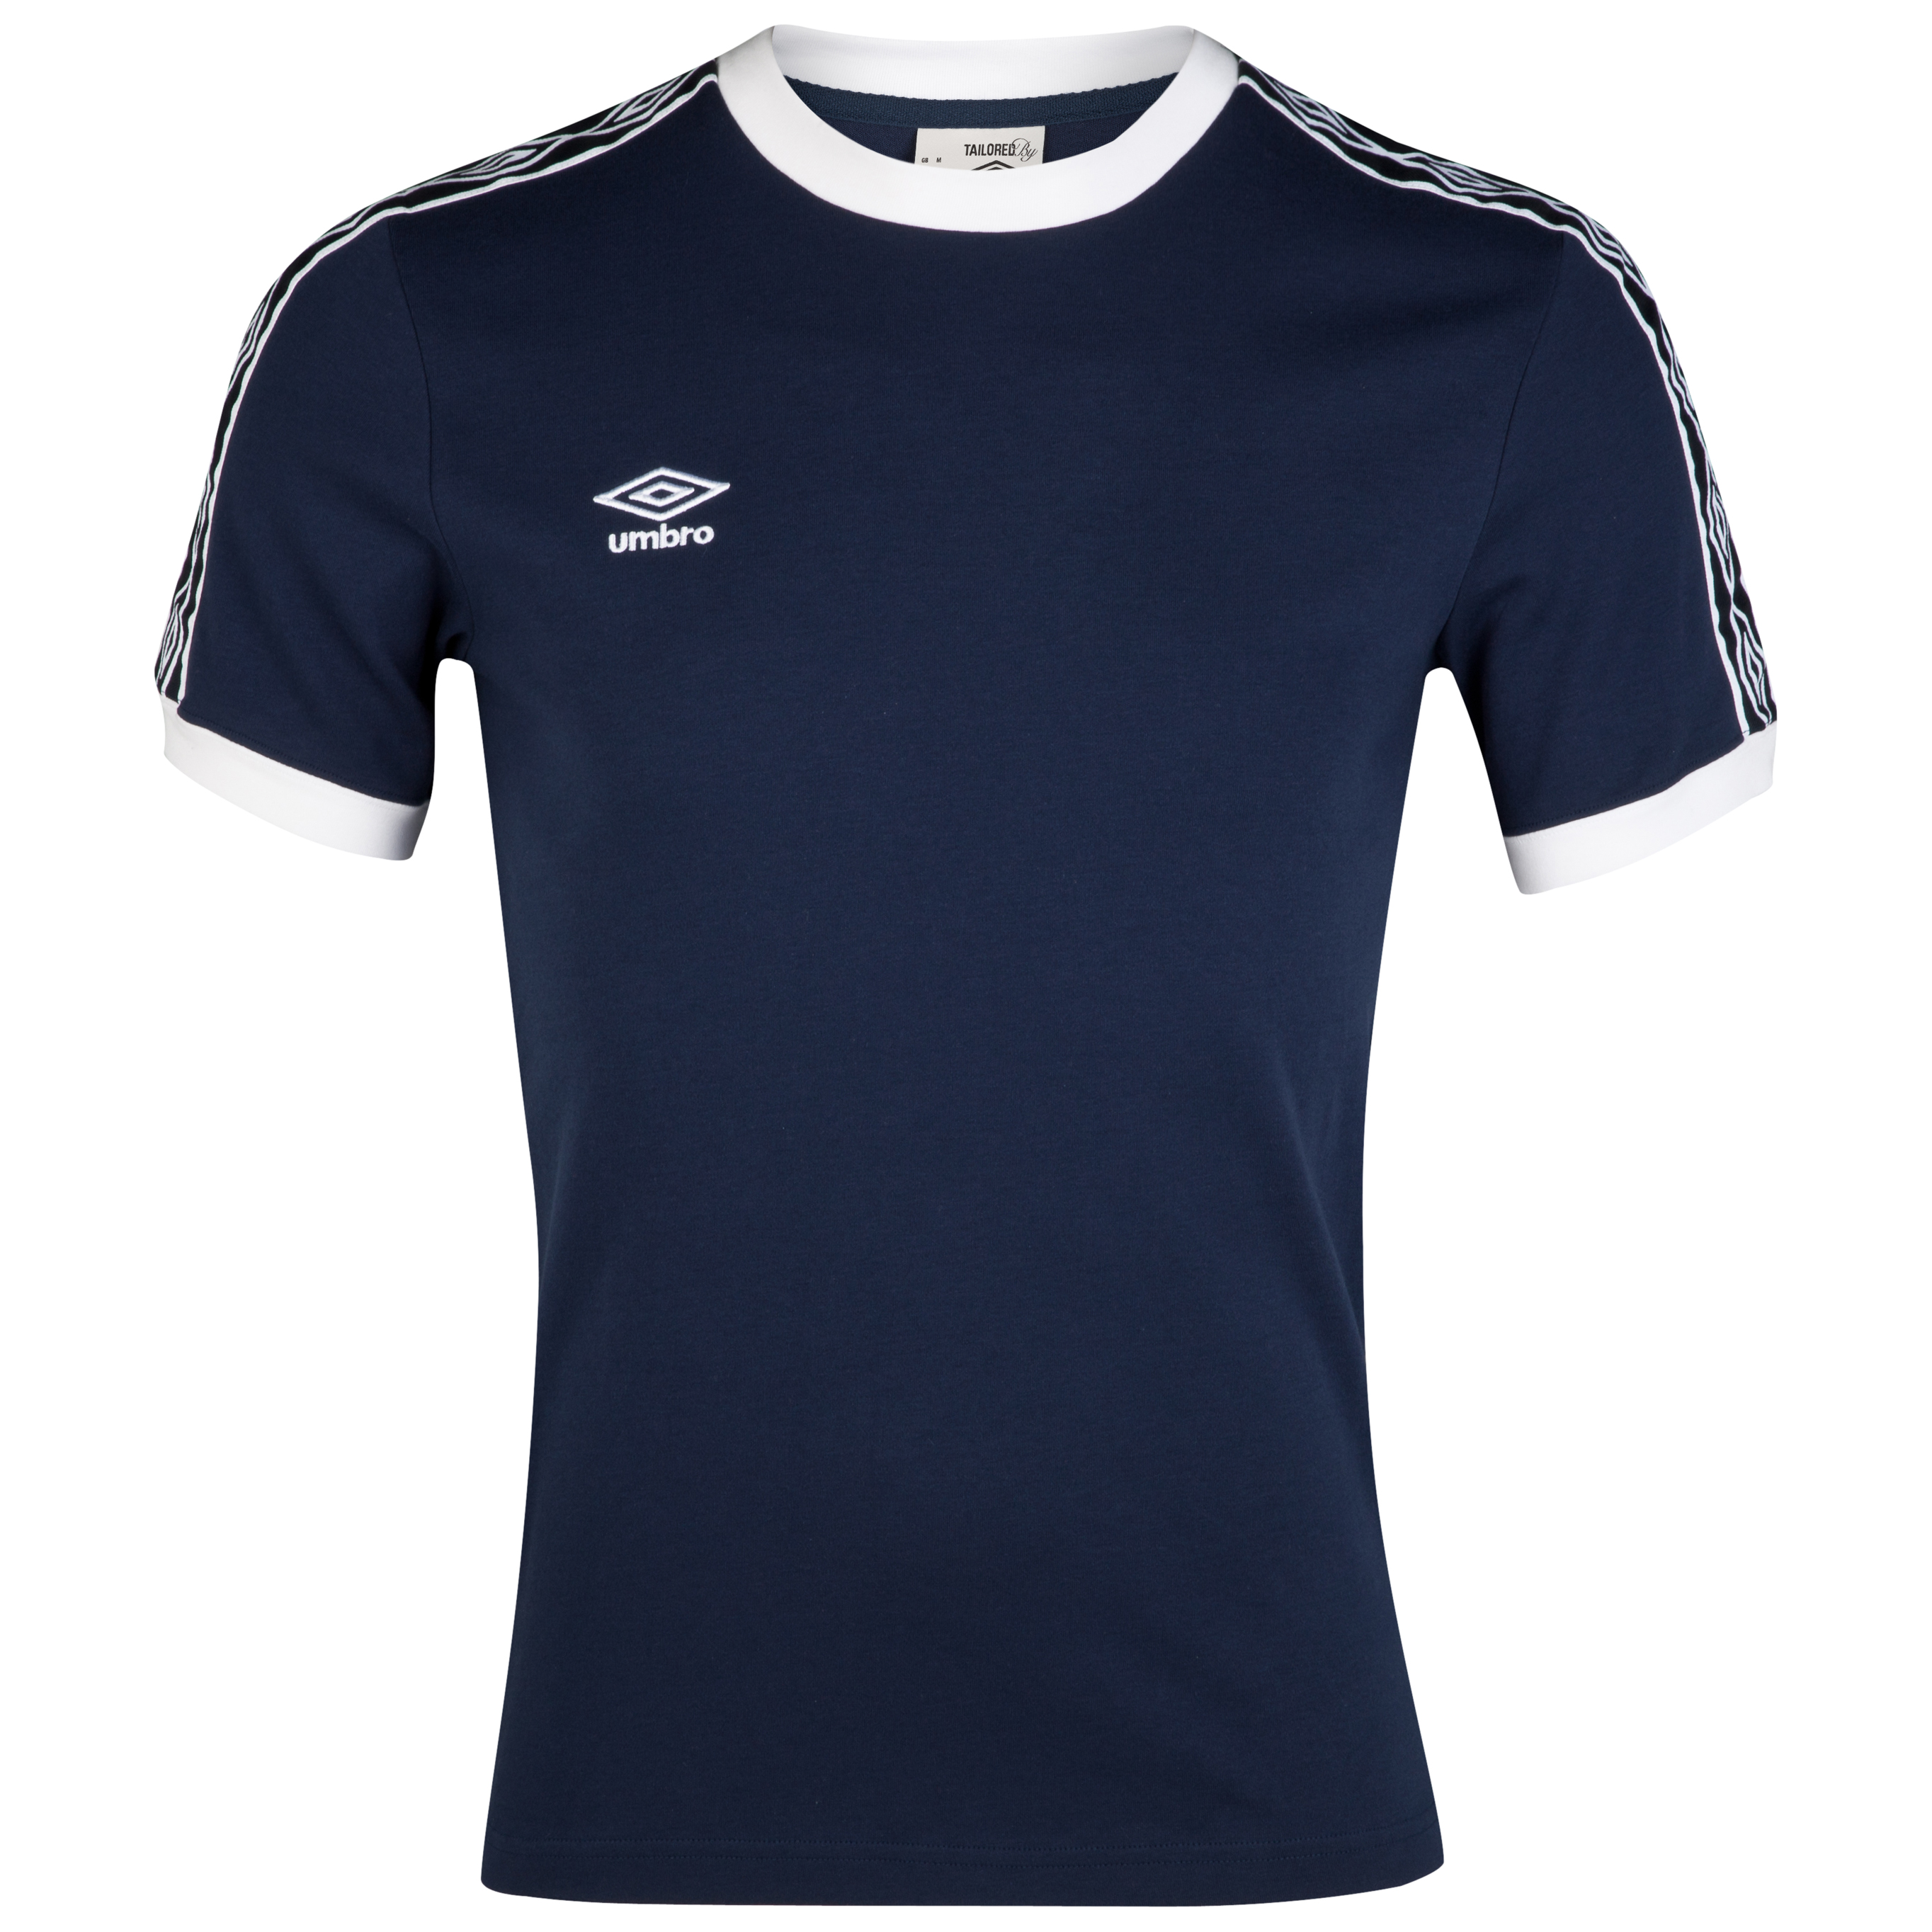 Umbro Heritage Ringer T-Shirt - Dark Navy/White